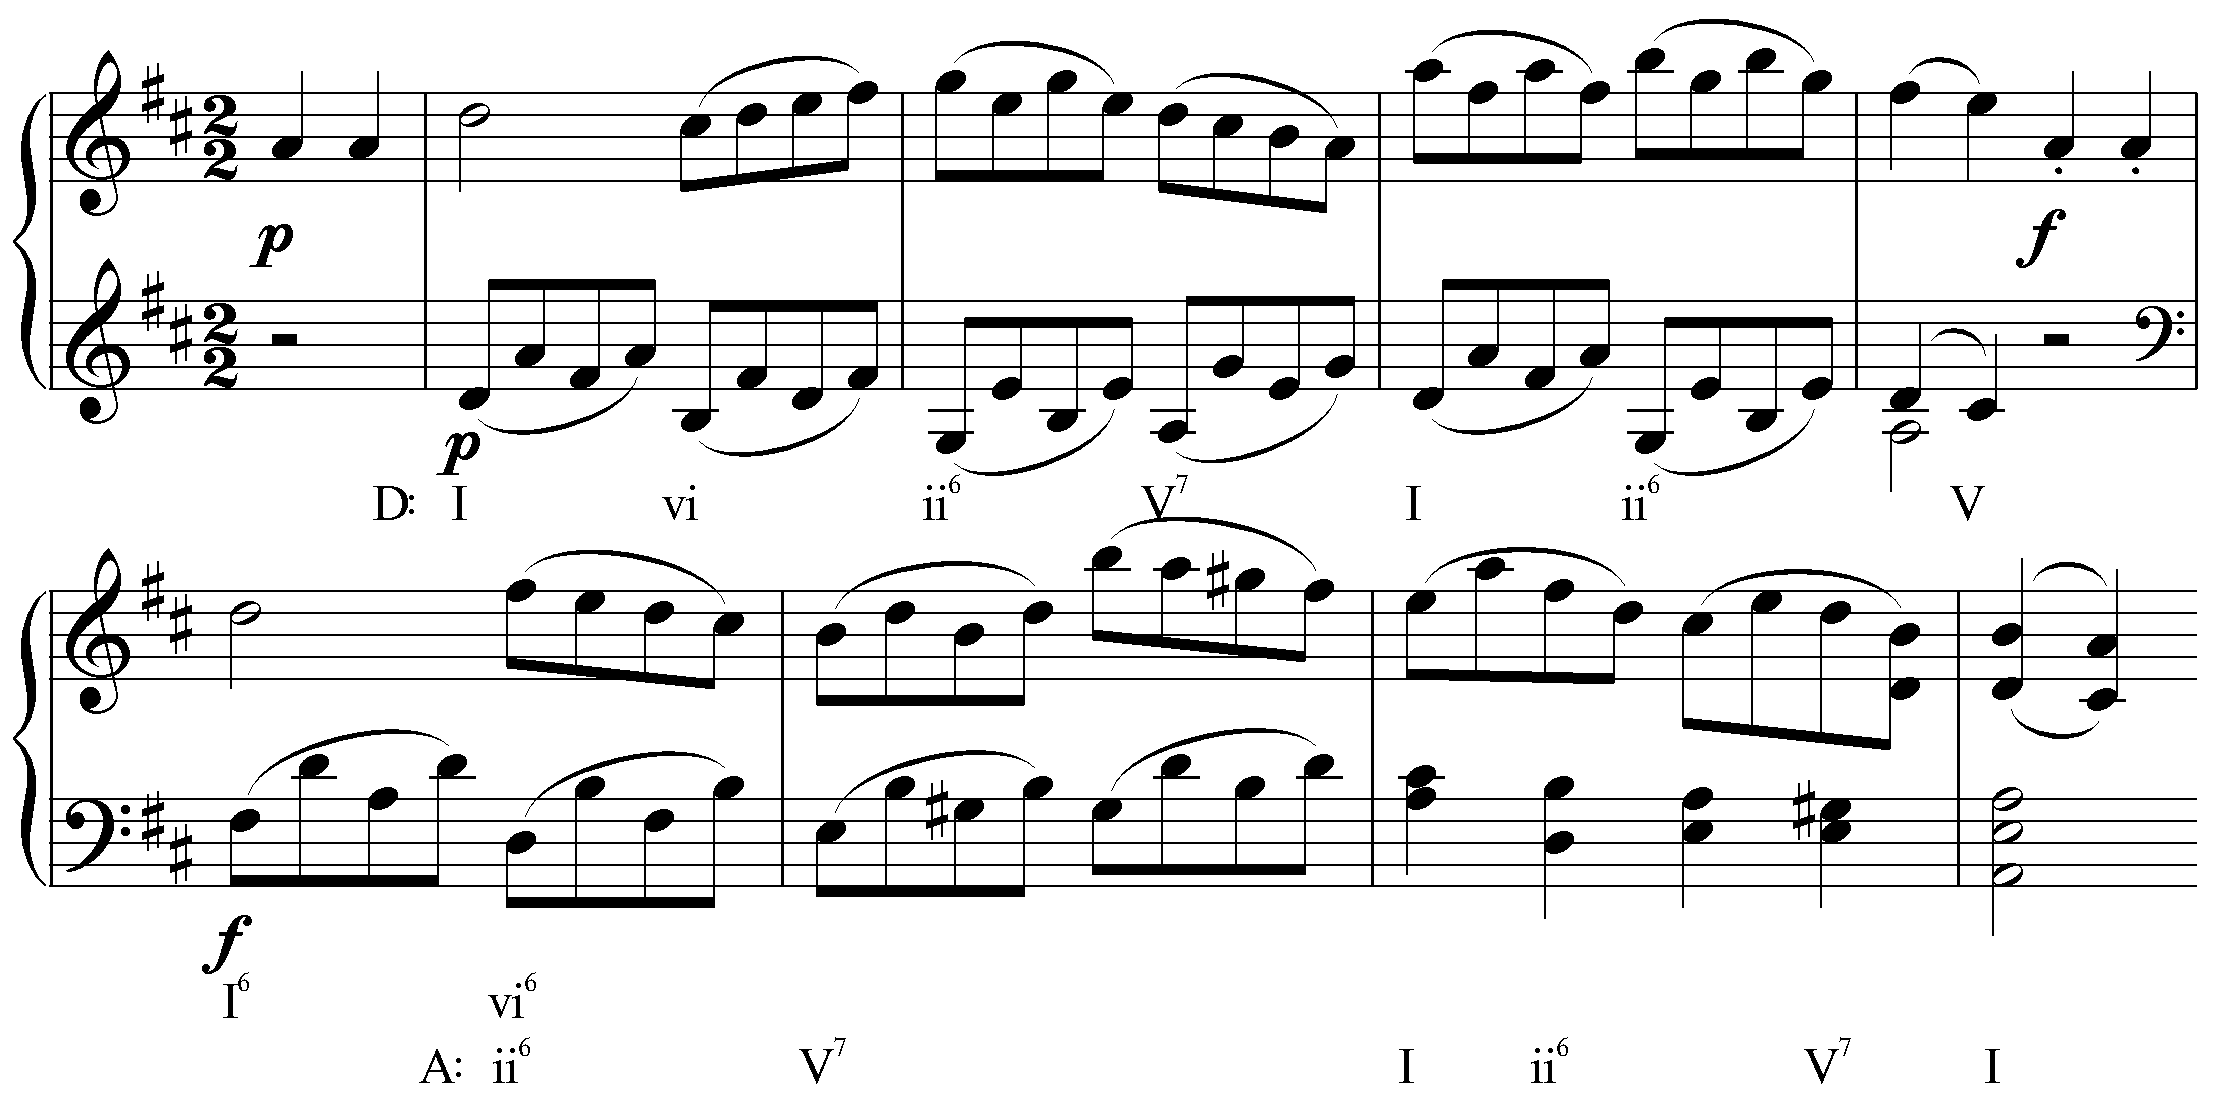 common chord modulation in mozart, sonata in d major, k. 284, iii, m. 1-8.png